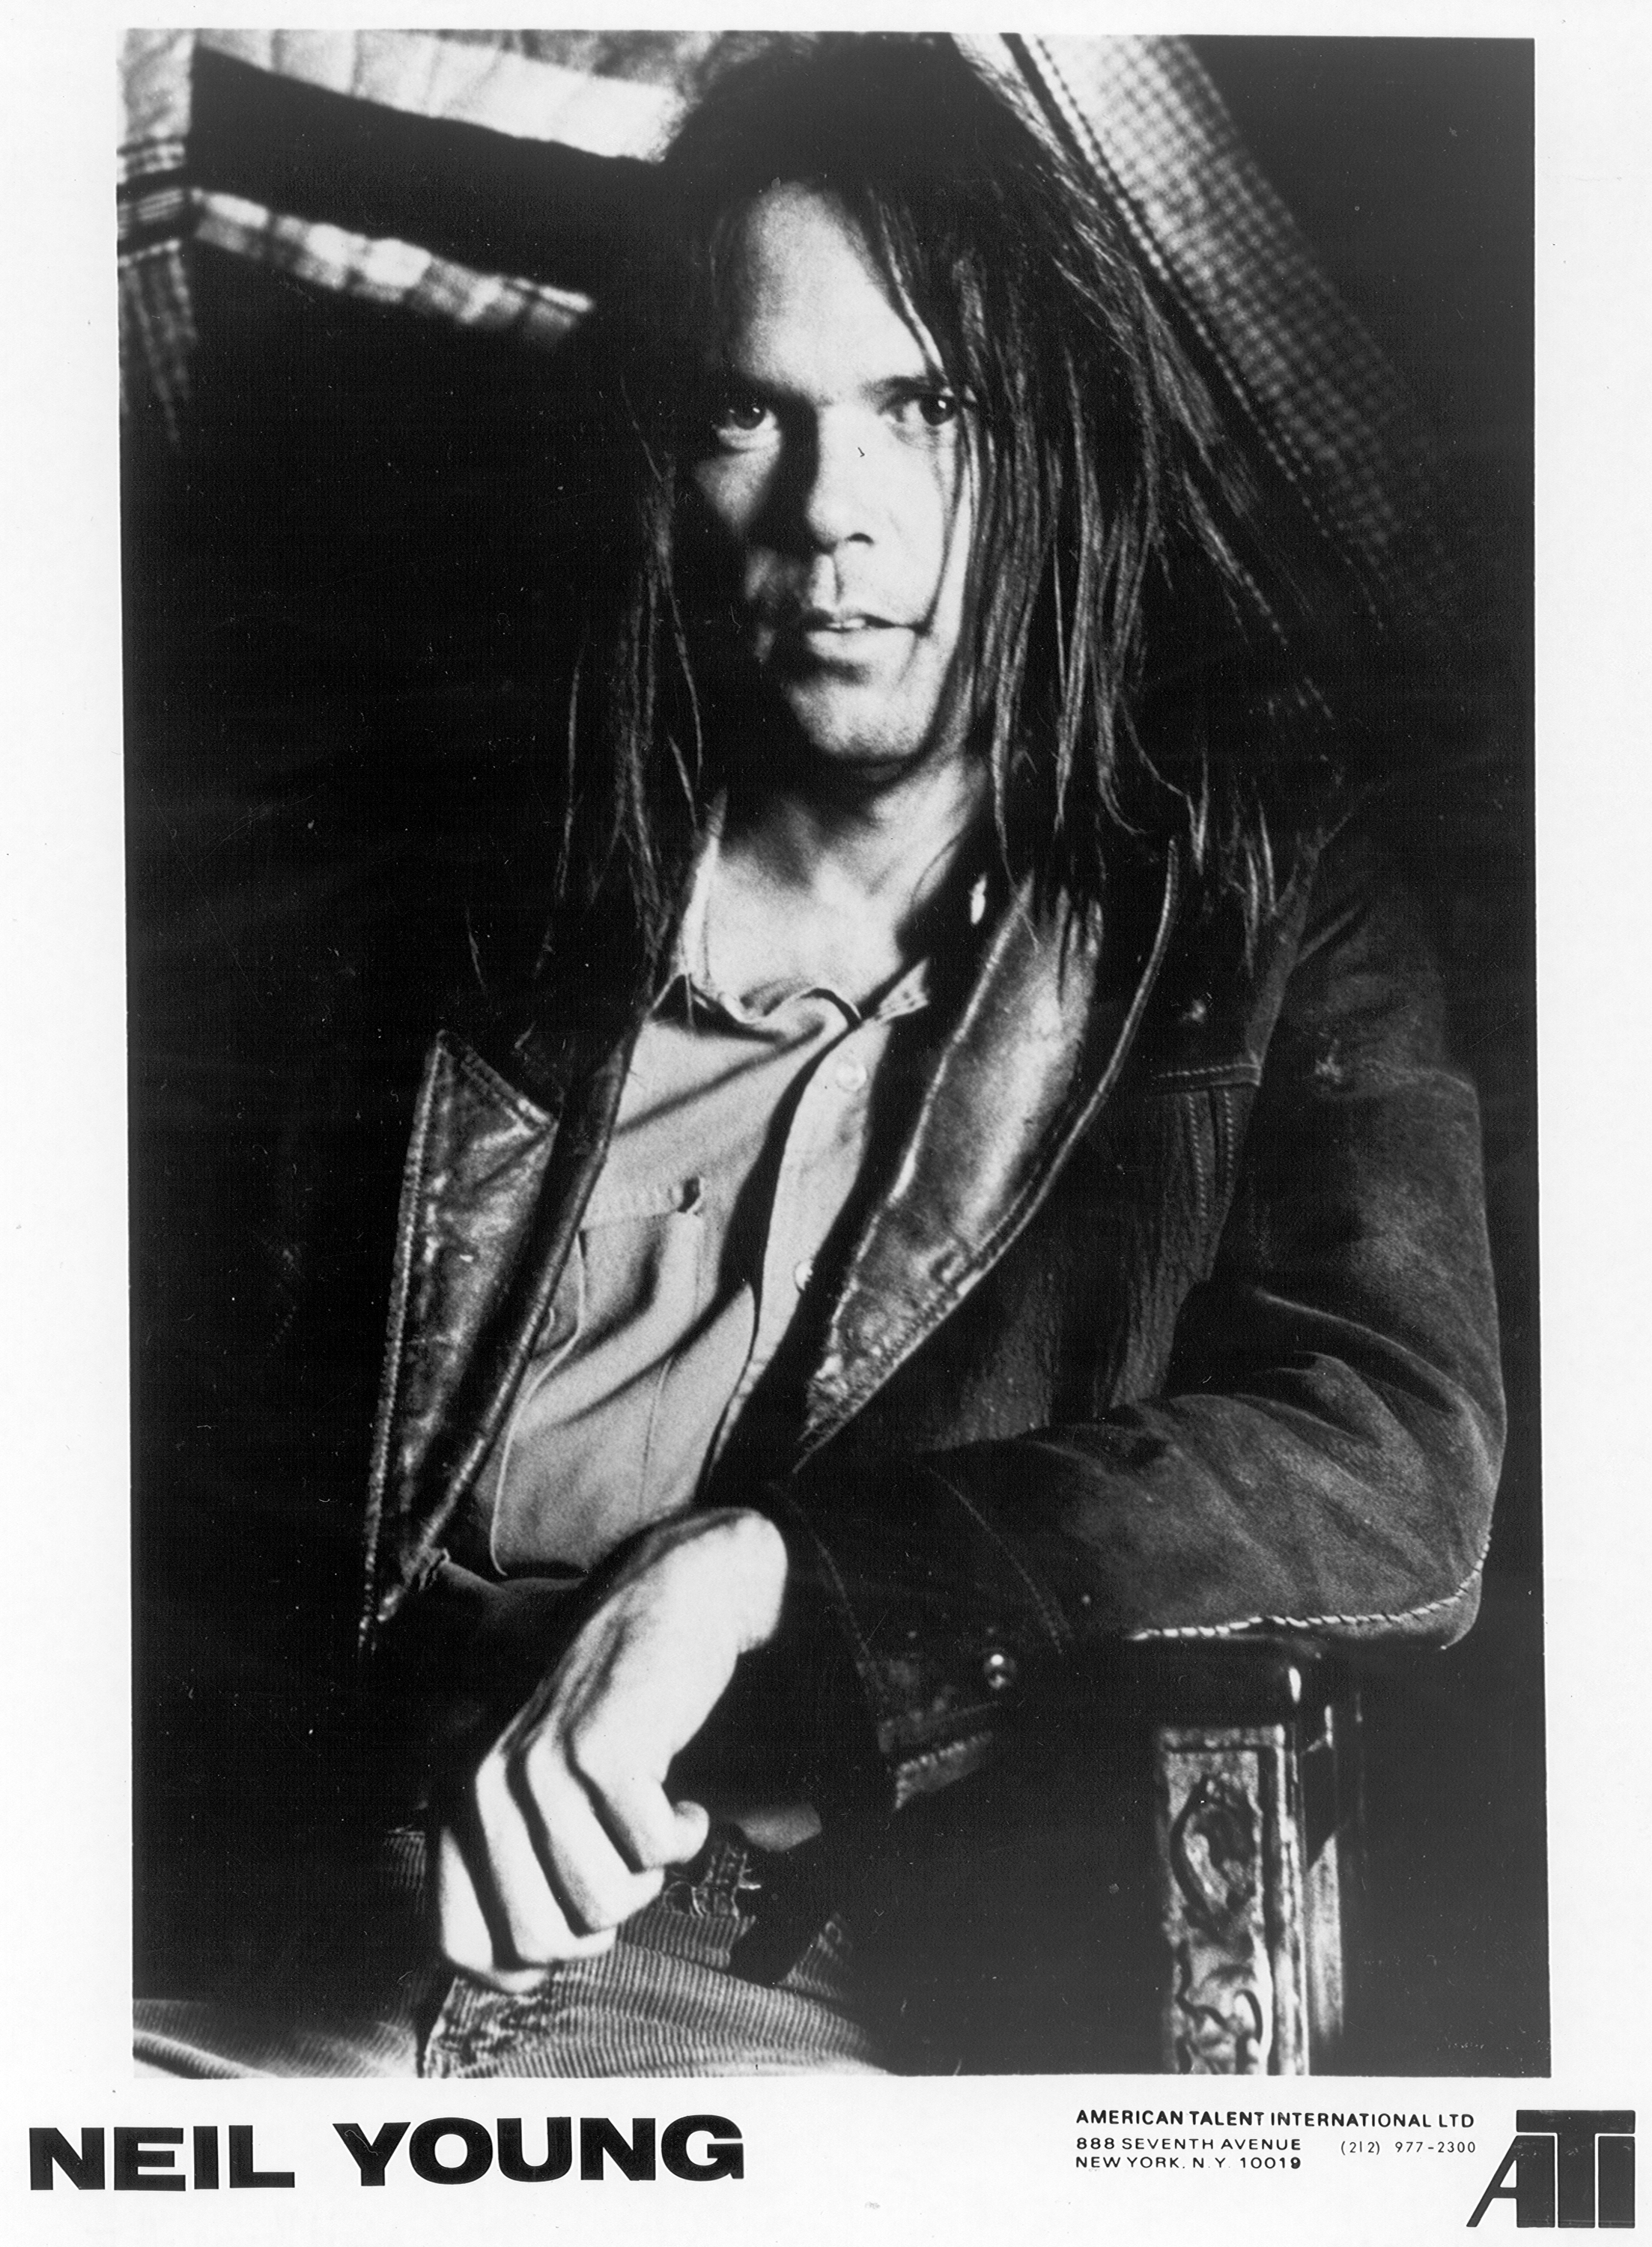 The Rebellious Neil Young